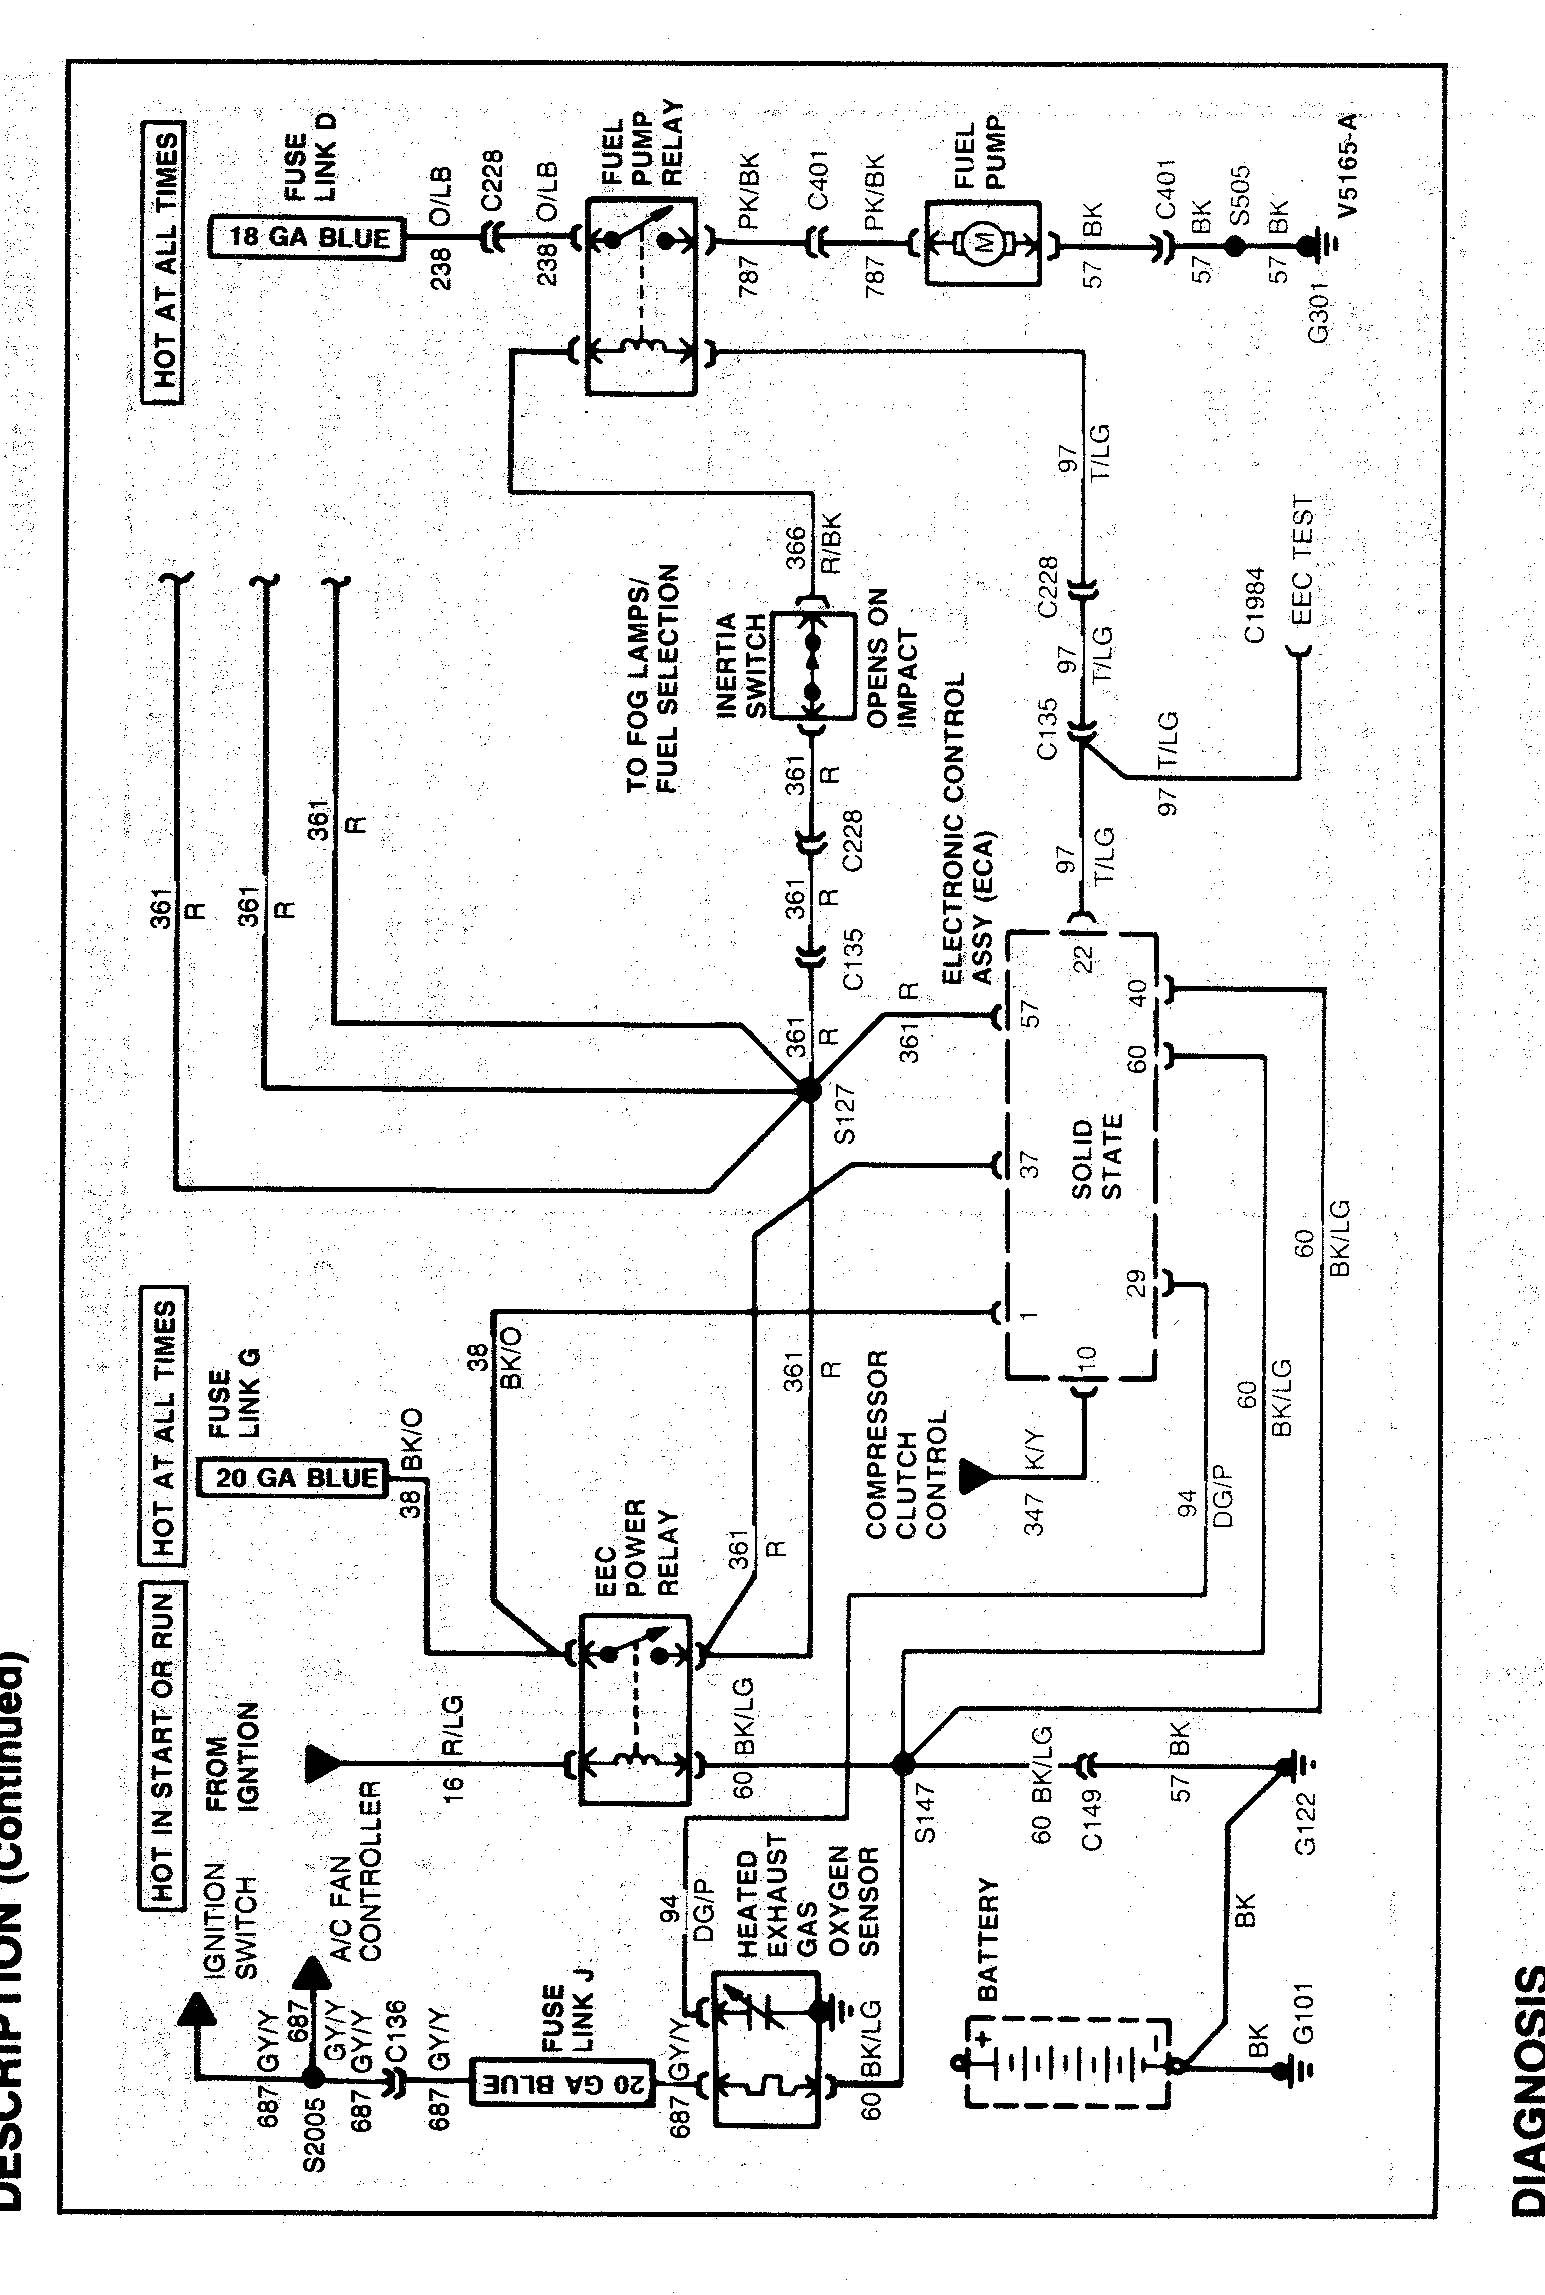 1991 f150 wiring diagram